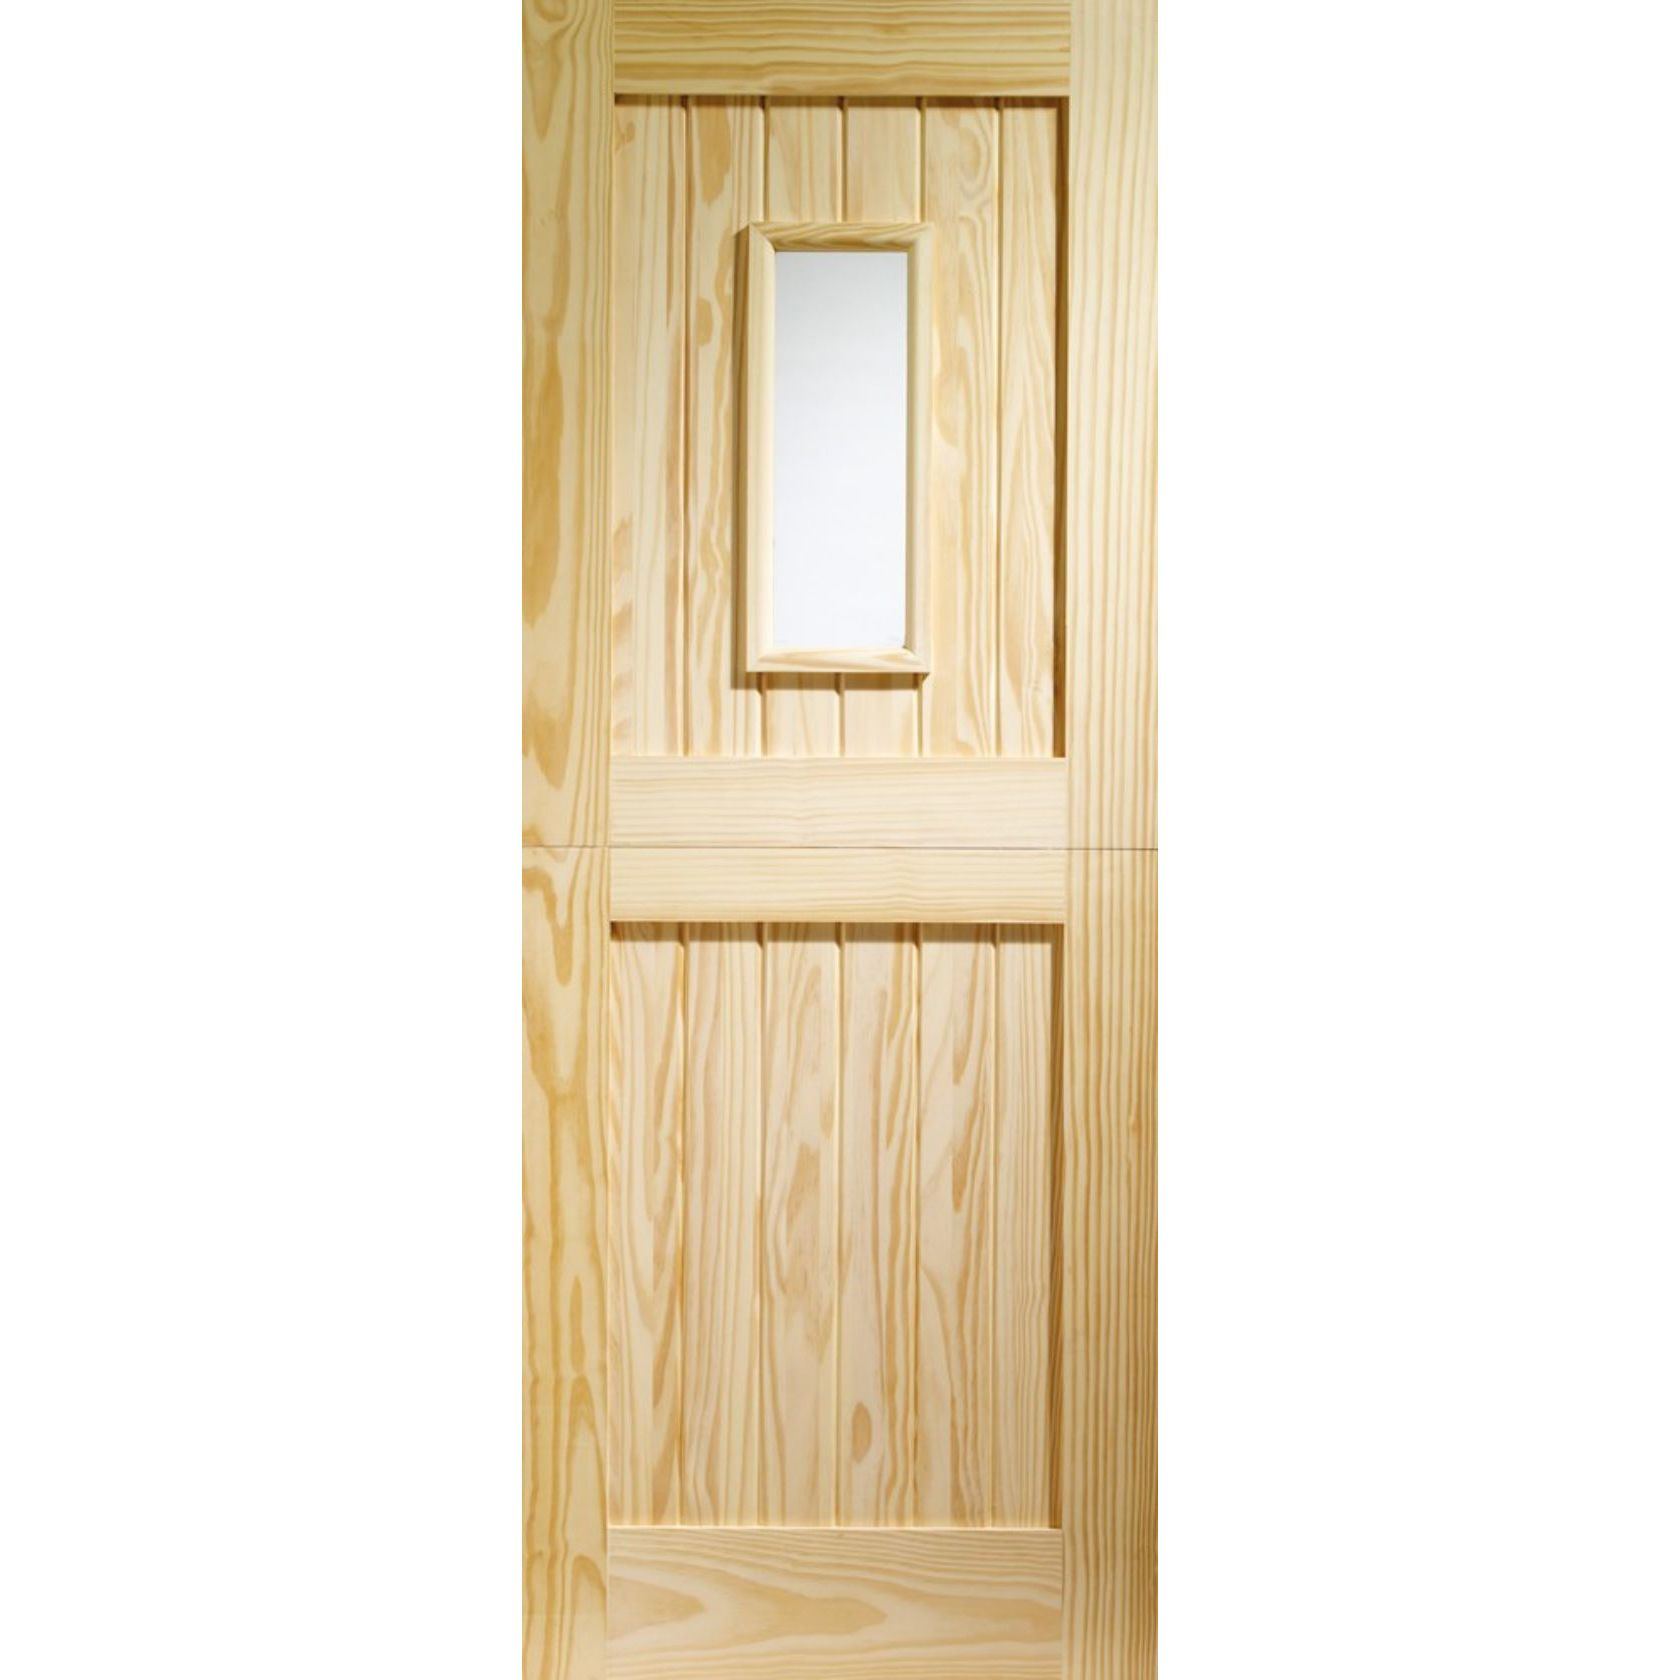 Stable Glazed Door: 1-light *Clear Glazed* Pine 44mm External Door - XL Doors